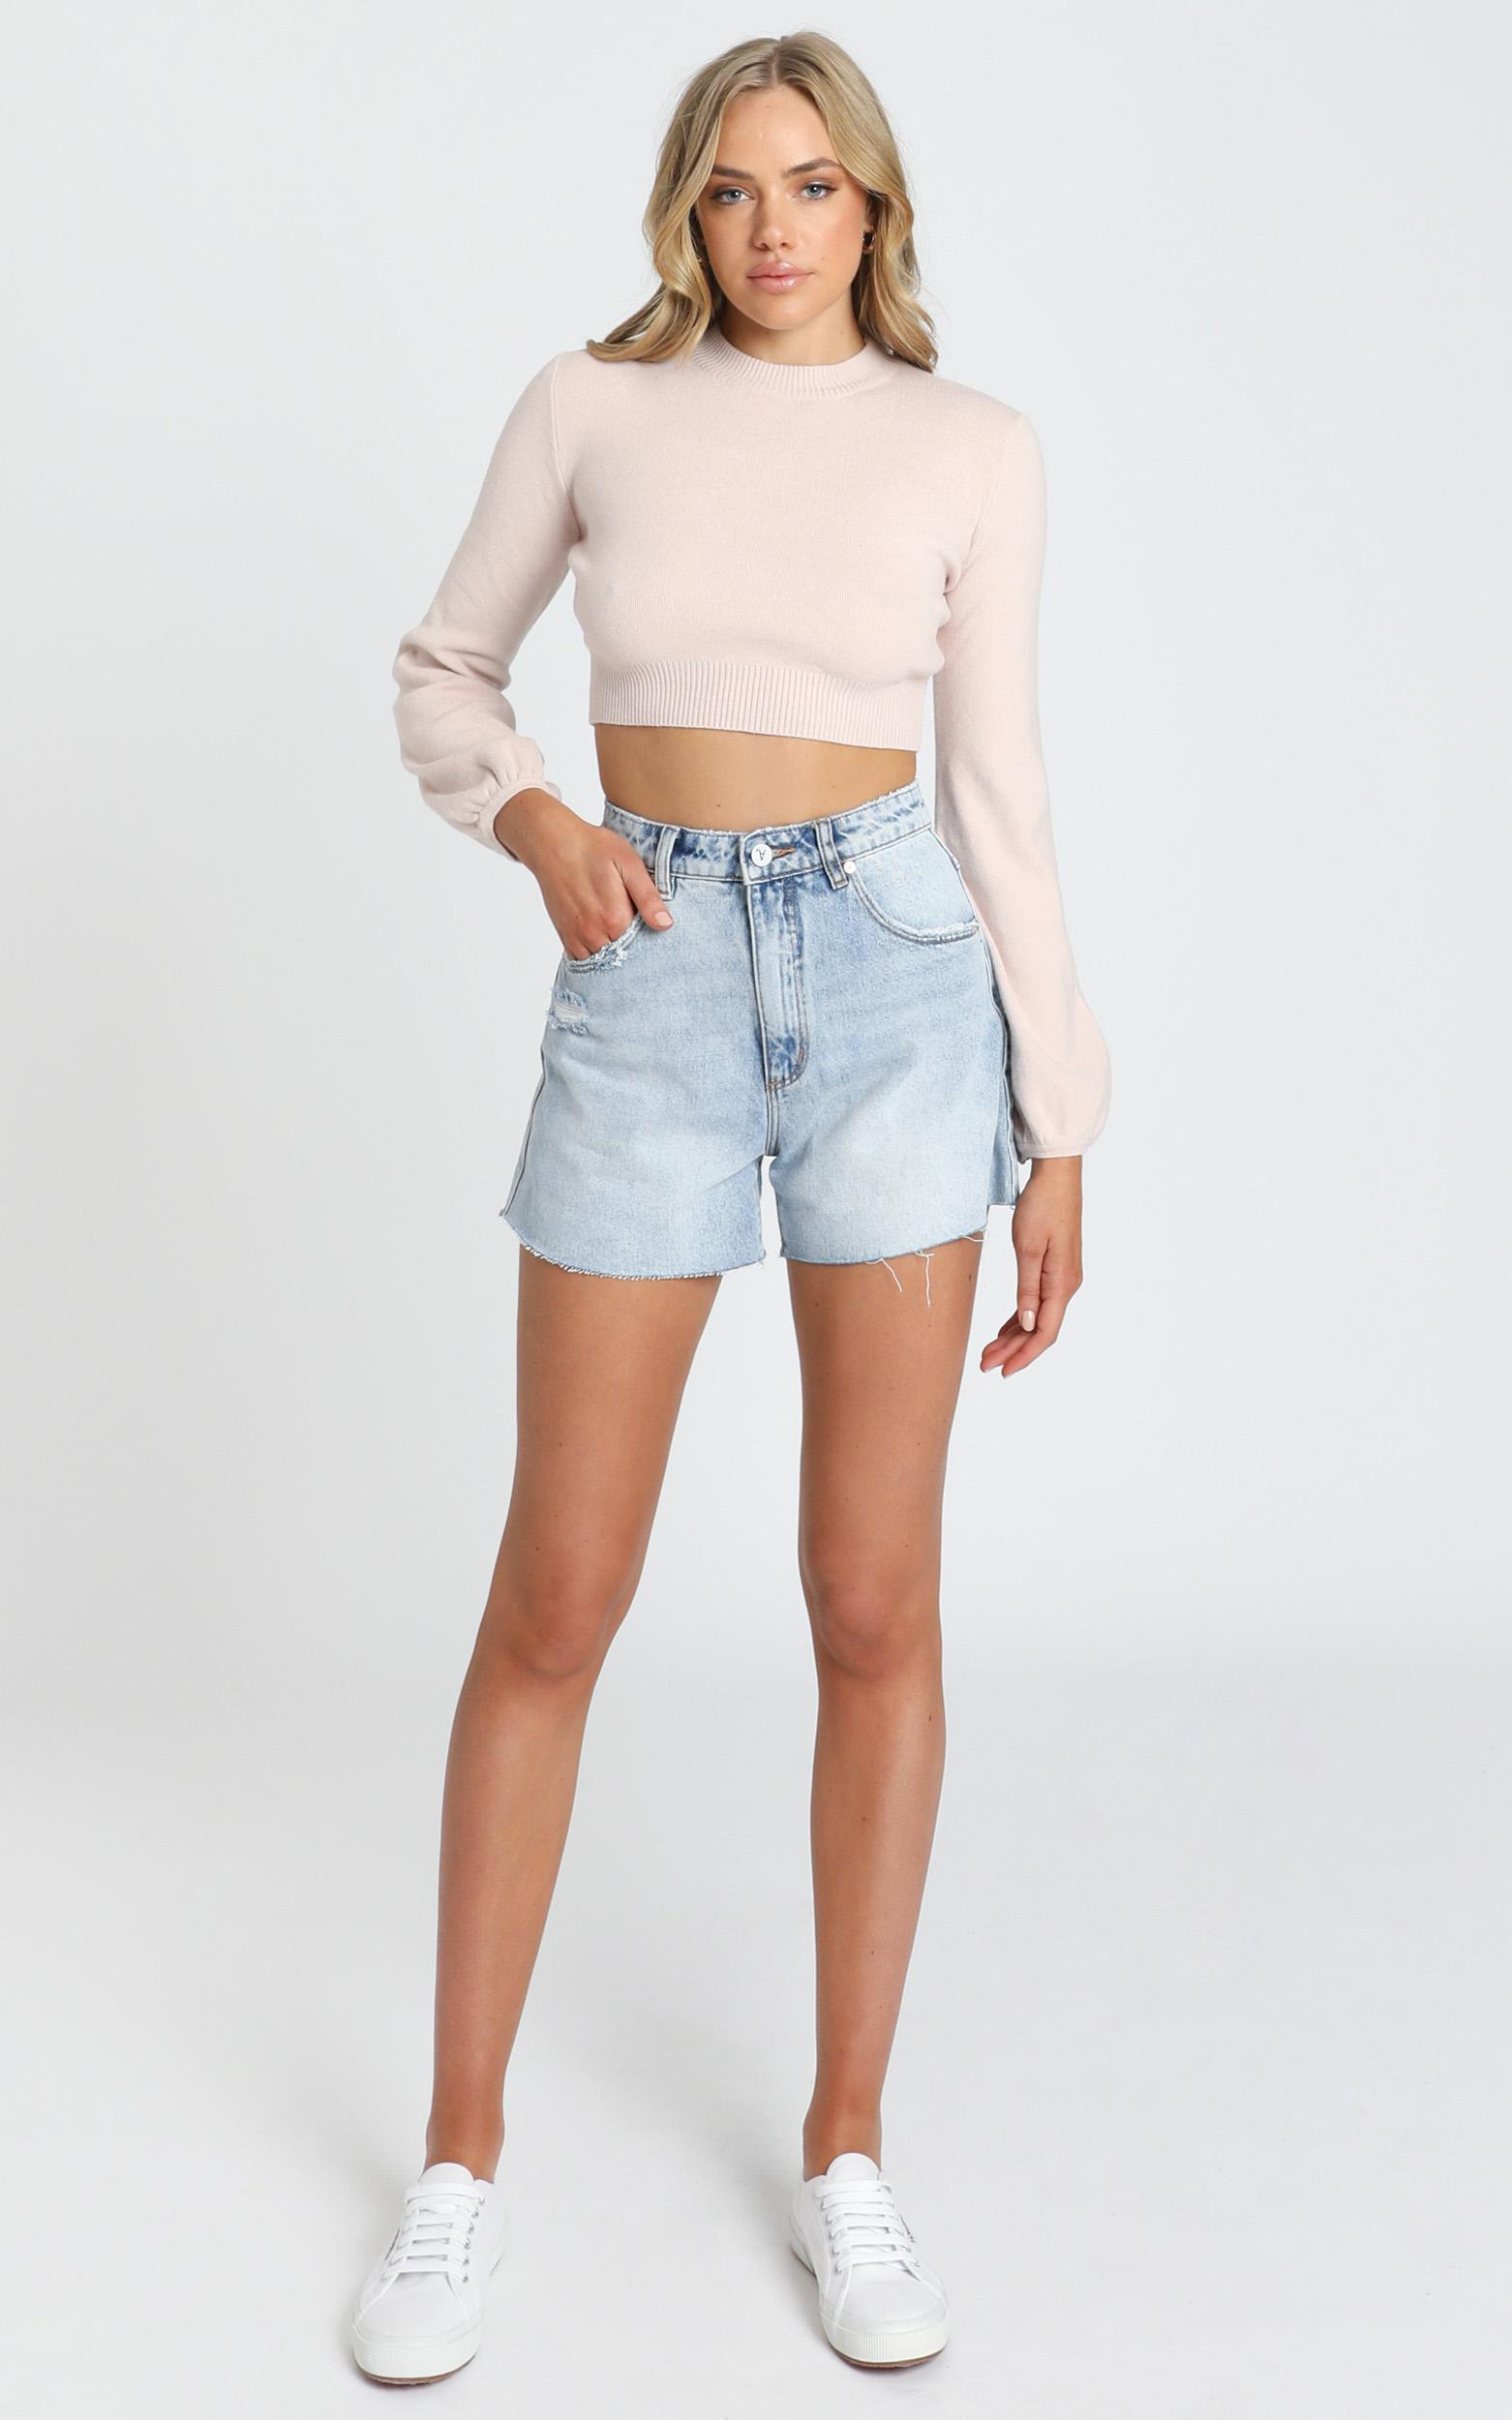 Nelli Cropped Knit Jumper in Blush - S, Blush, hi-res image number null